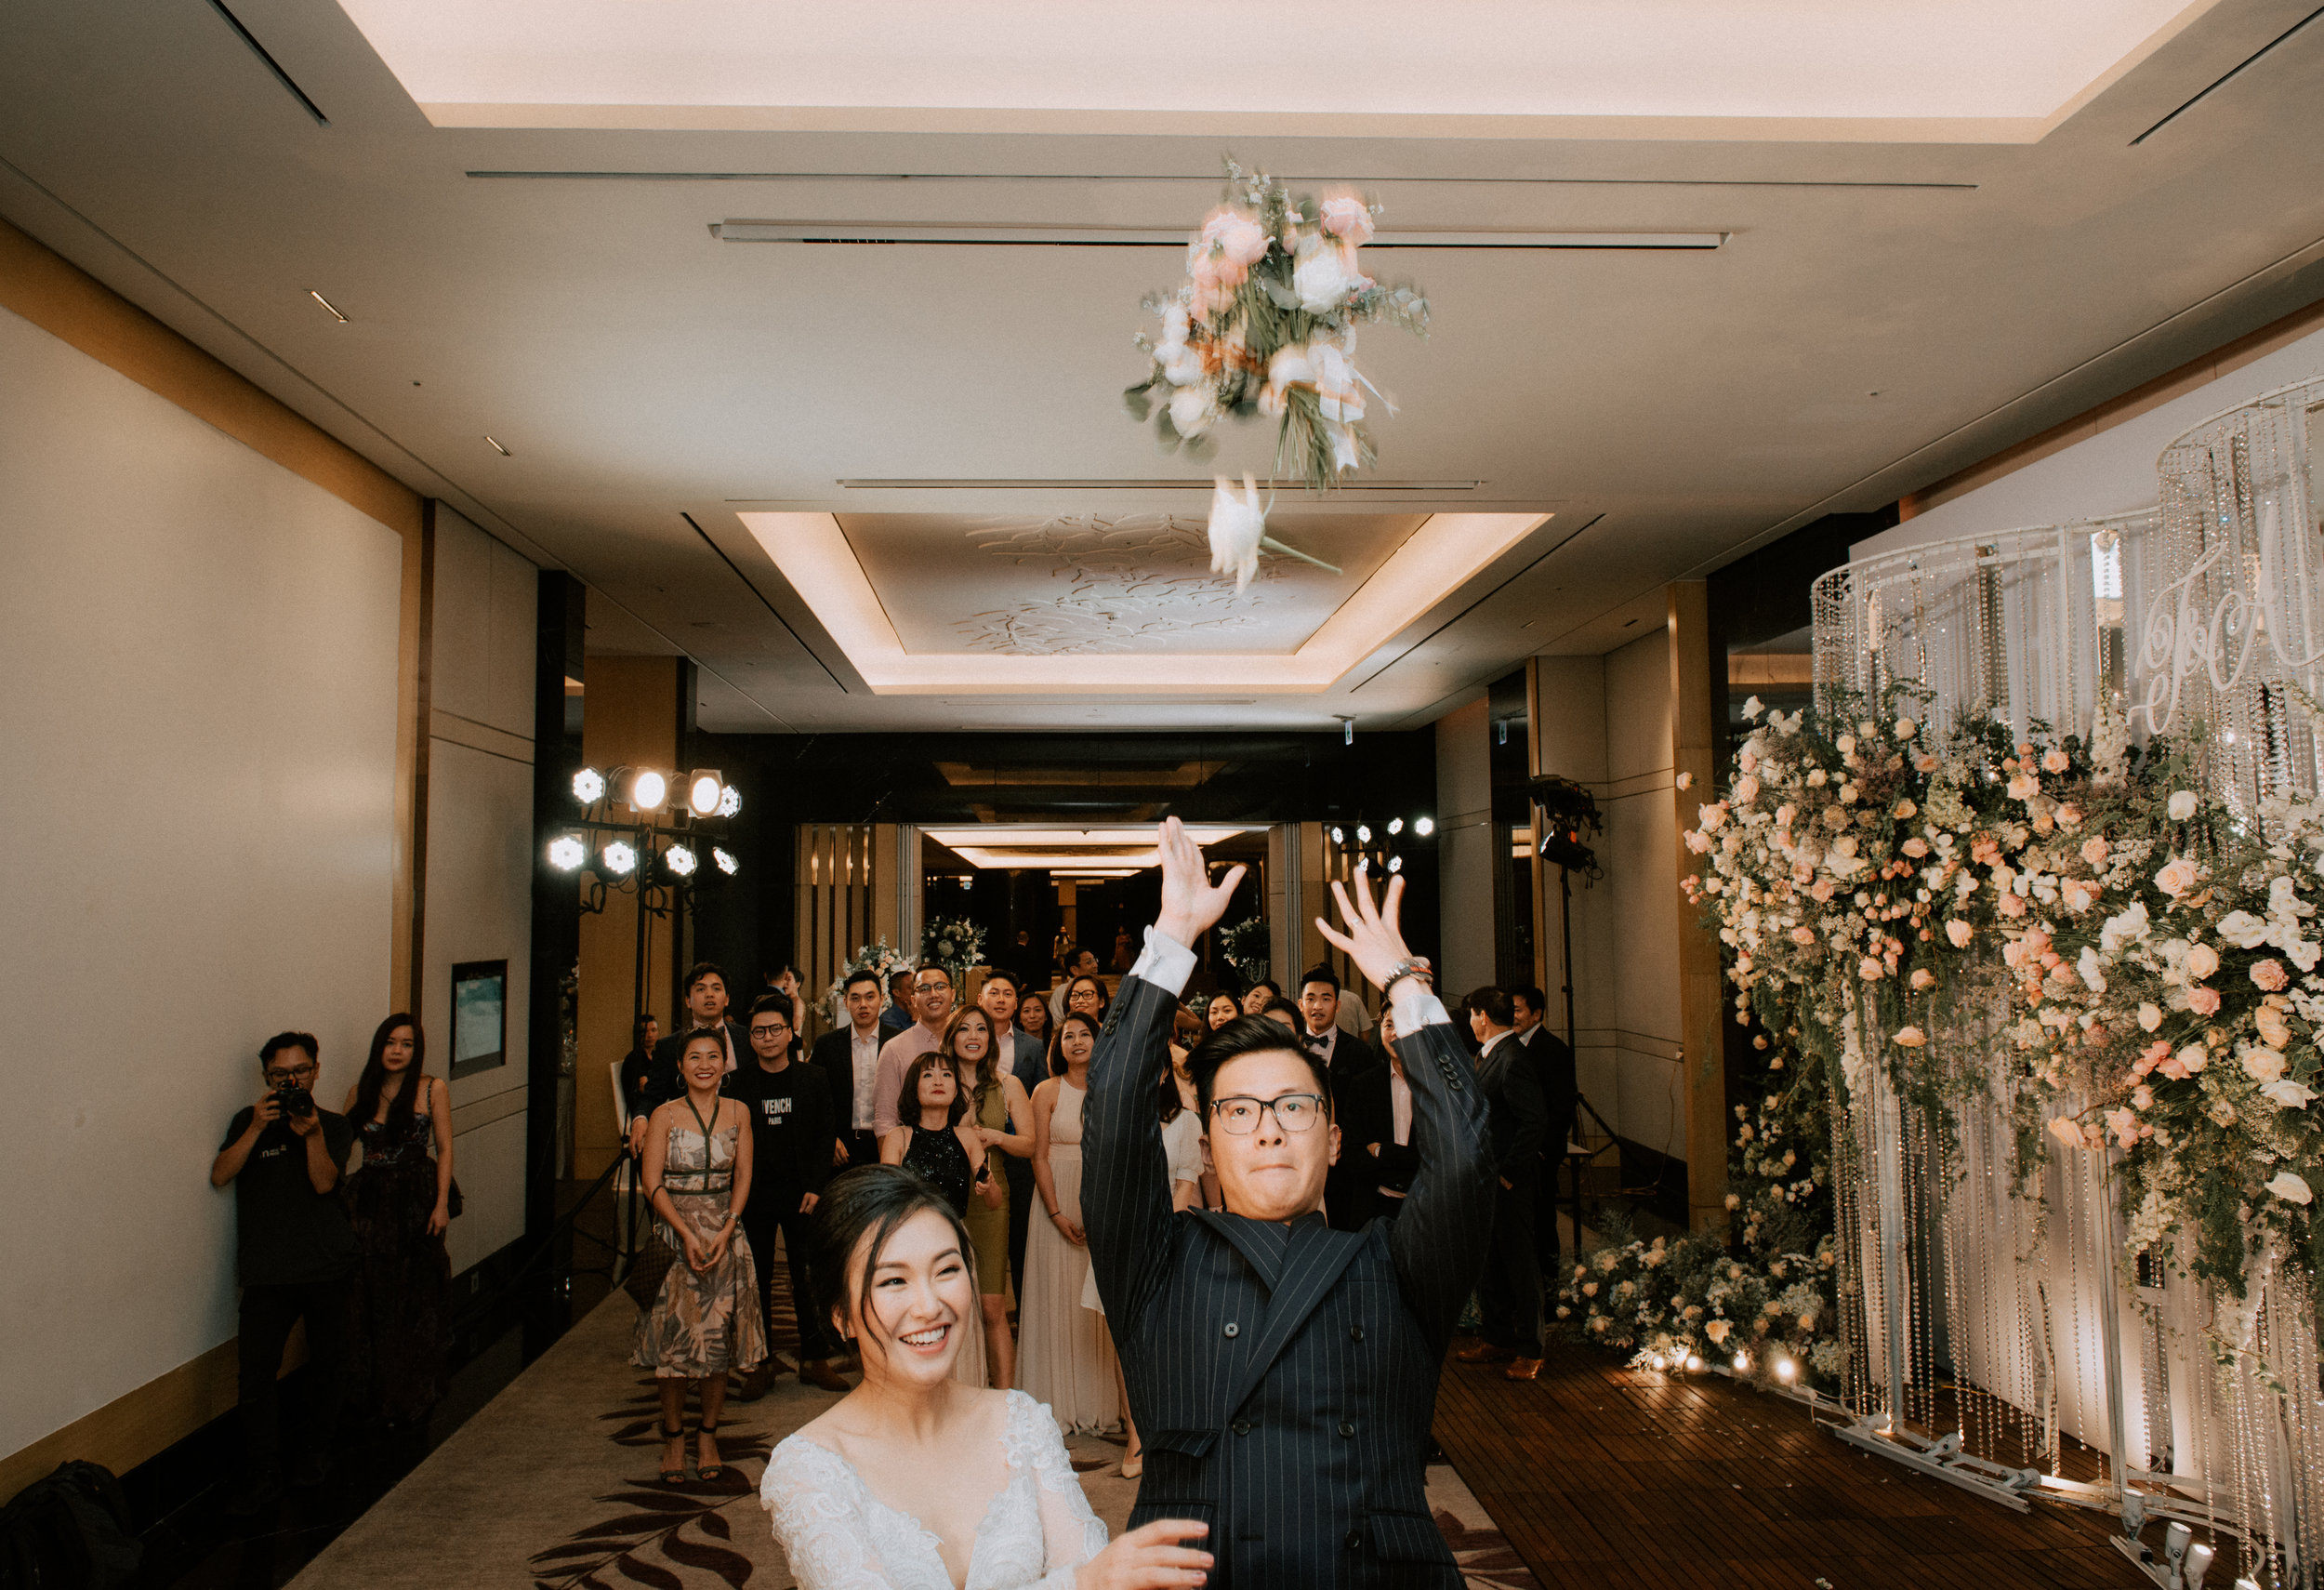 - Clients: Phuong Nam & Thanh HaPlanner: Ngoc Hoang Concept, decoration & coordination: The F LabVenue: Lotte HanoiPhoto: Mirror Wedding Video: Moc Wedding filmMUA:  Dung Nguyen